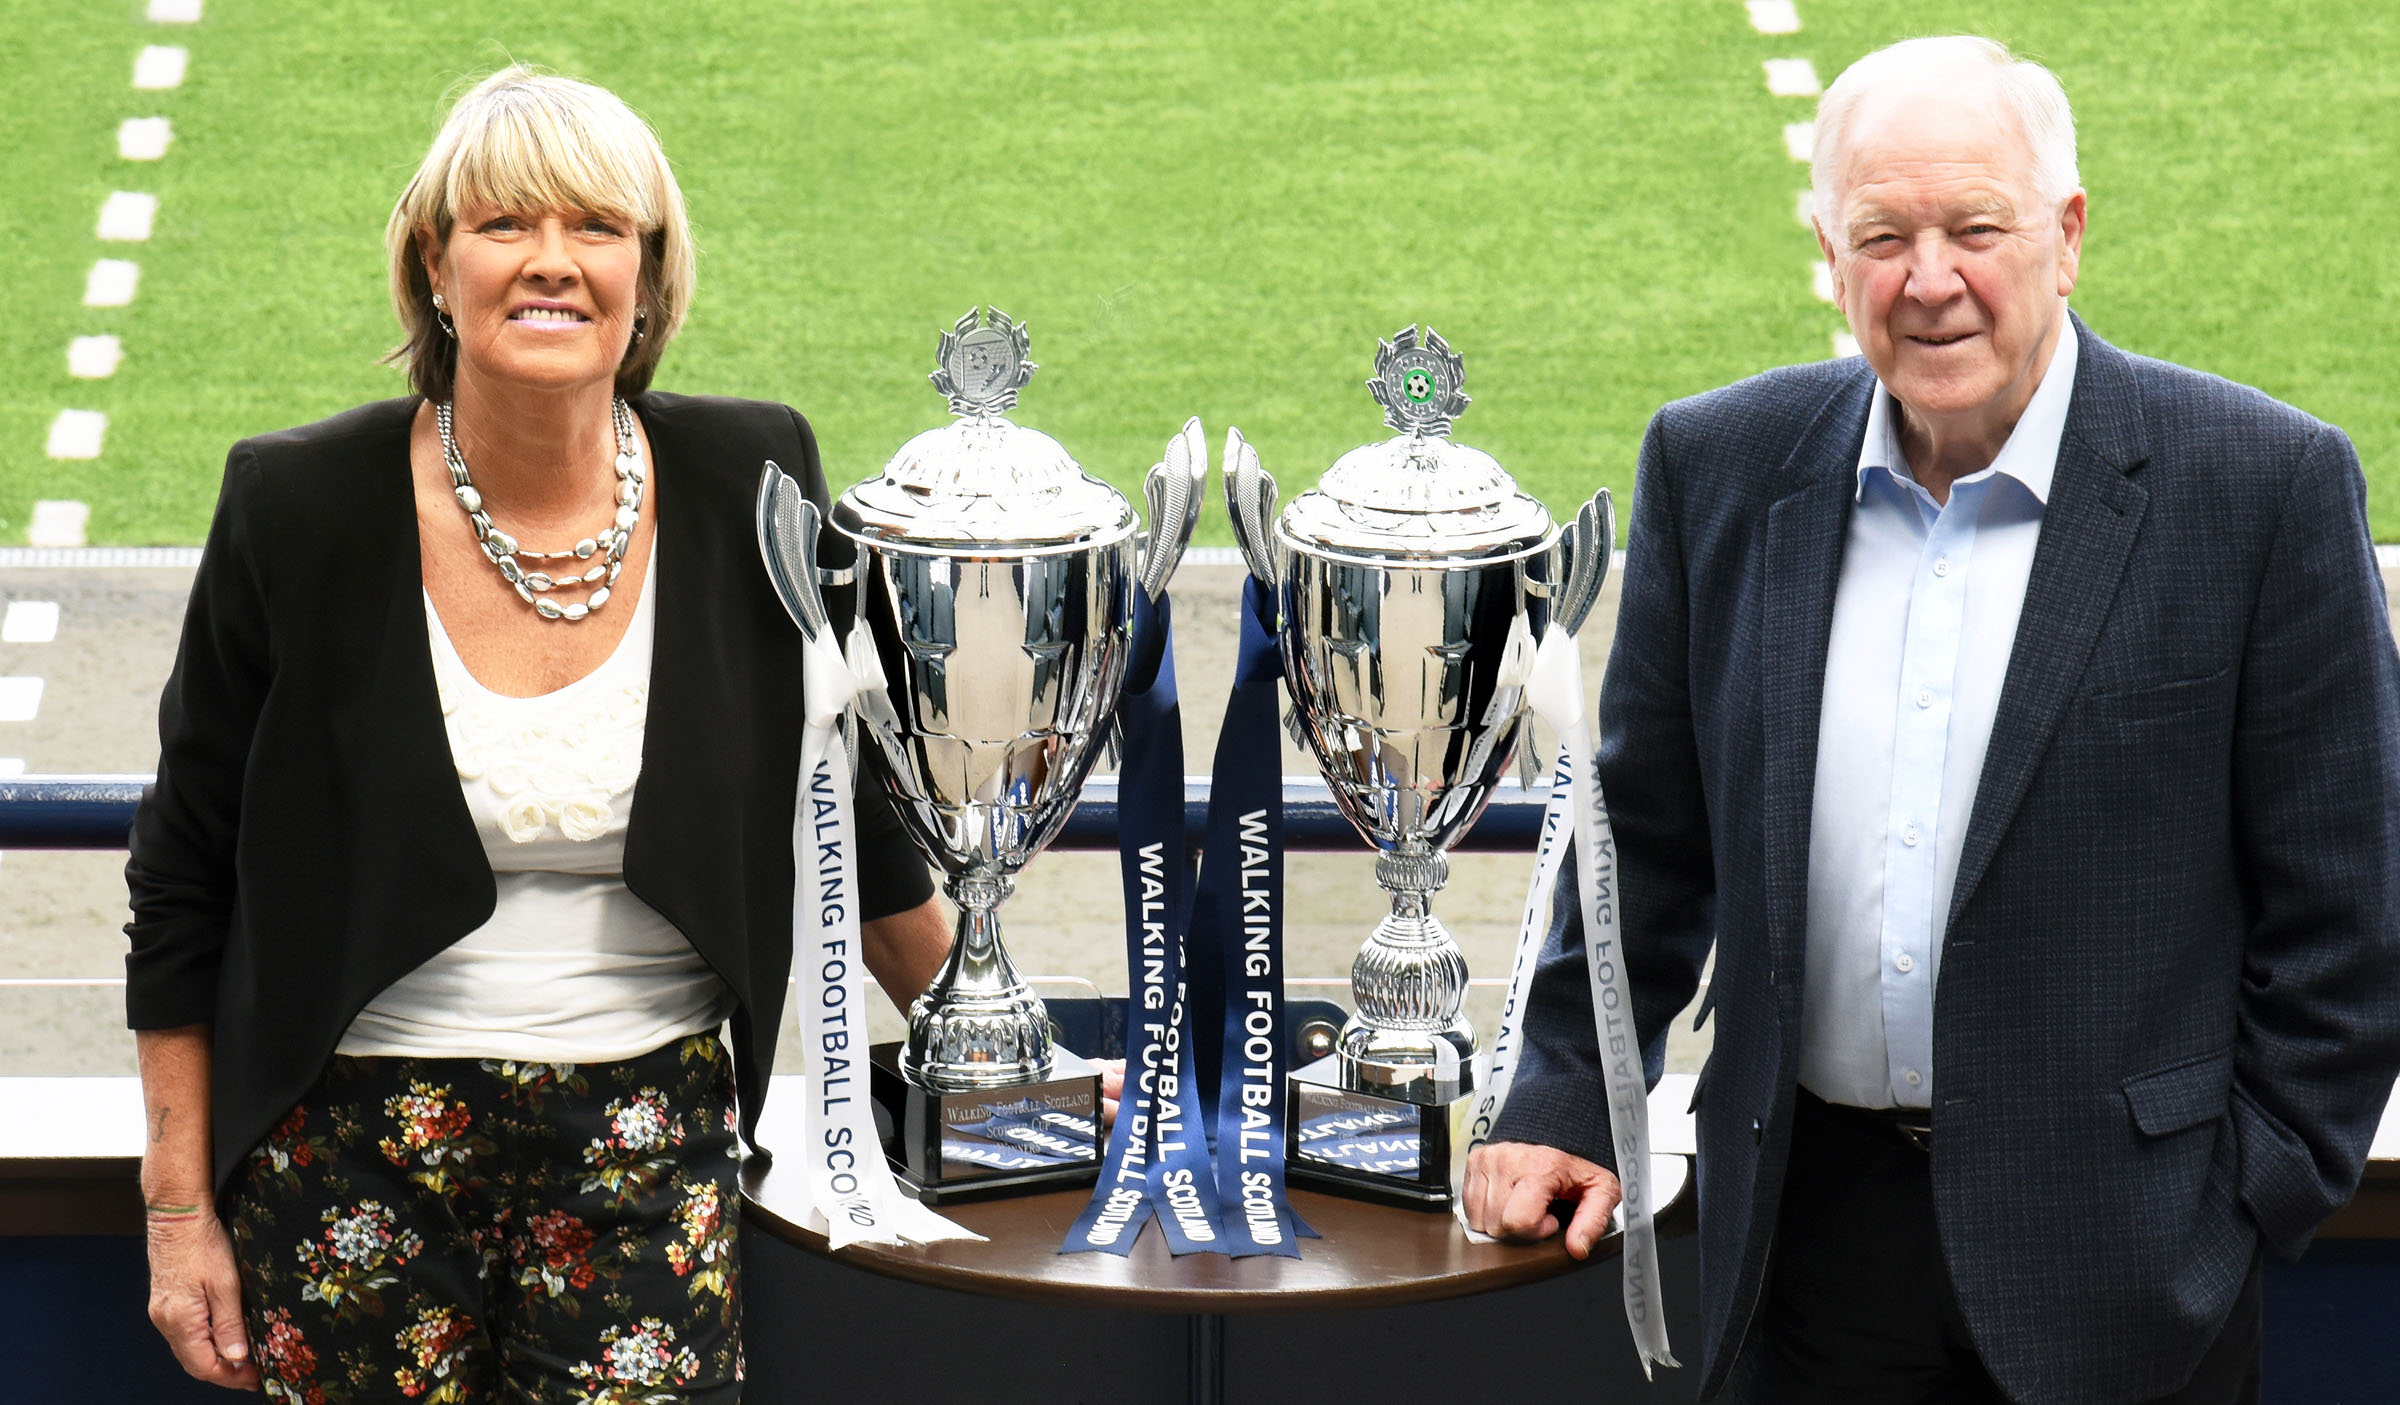 WFS Patrons Rose Reilly and Craig Brown with the WFS Scottish Cups.